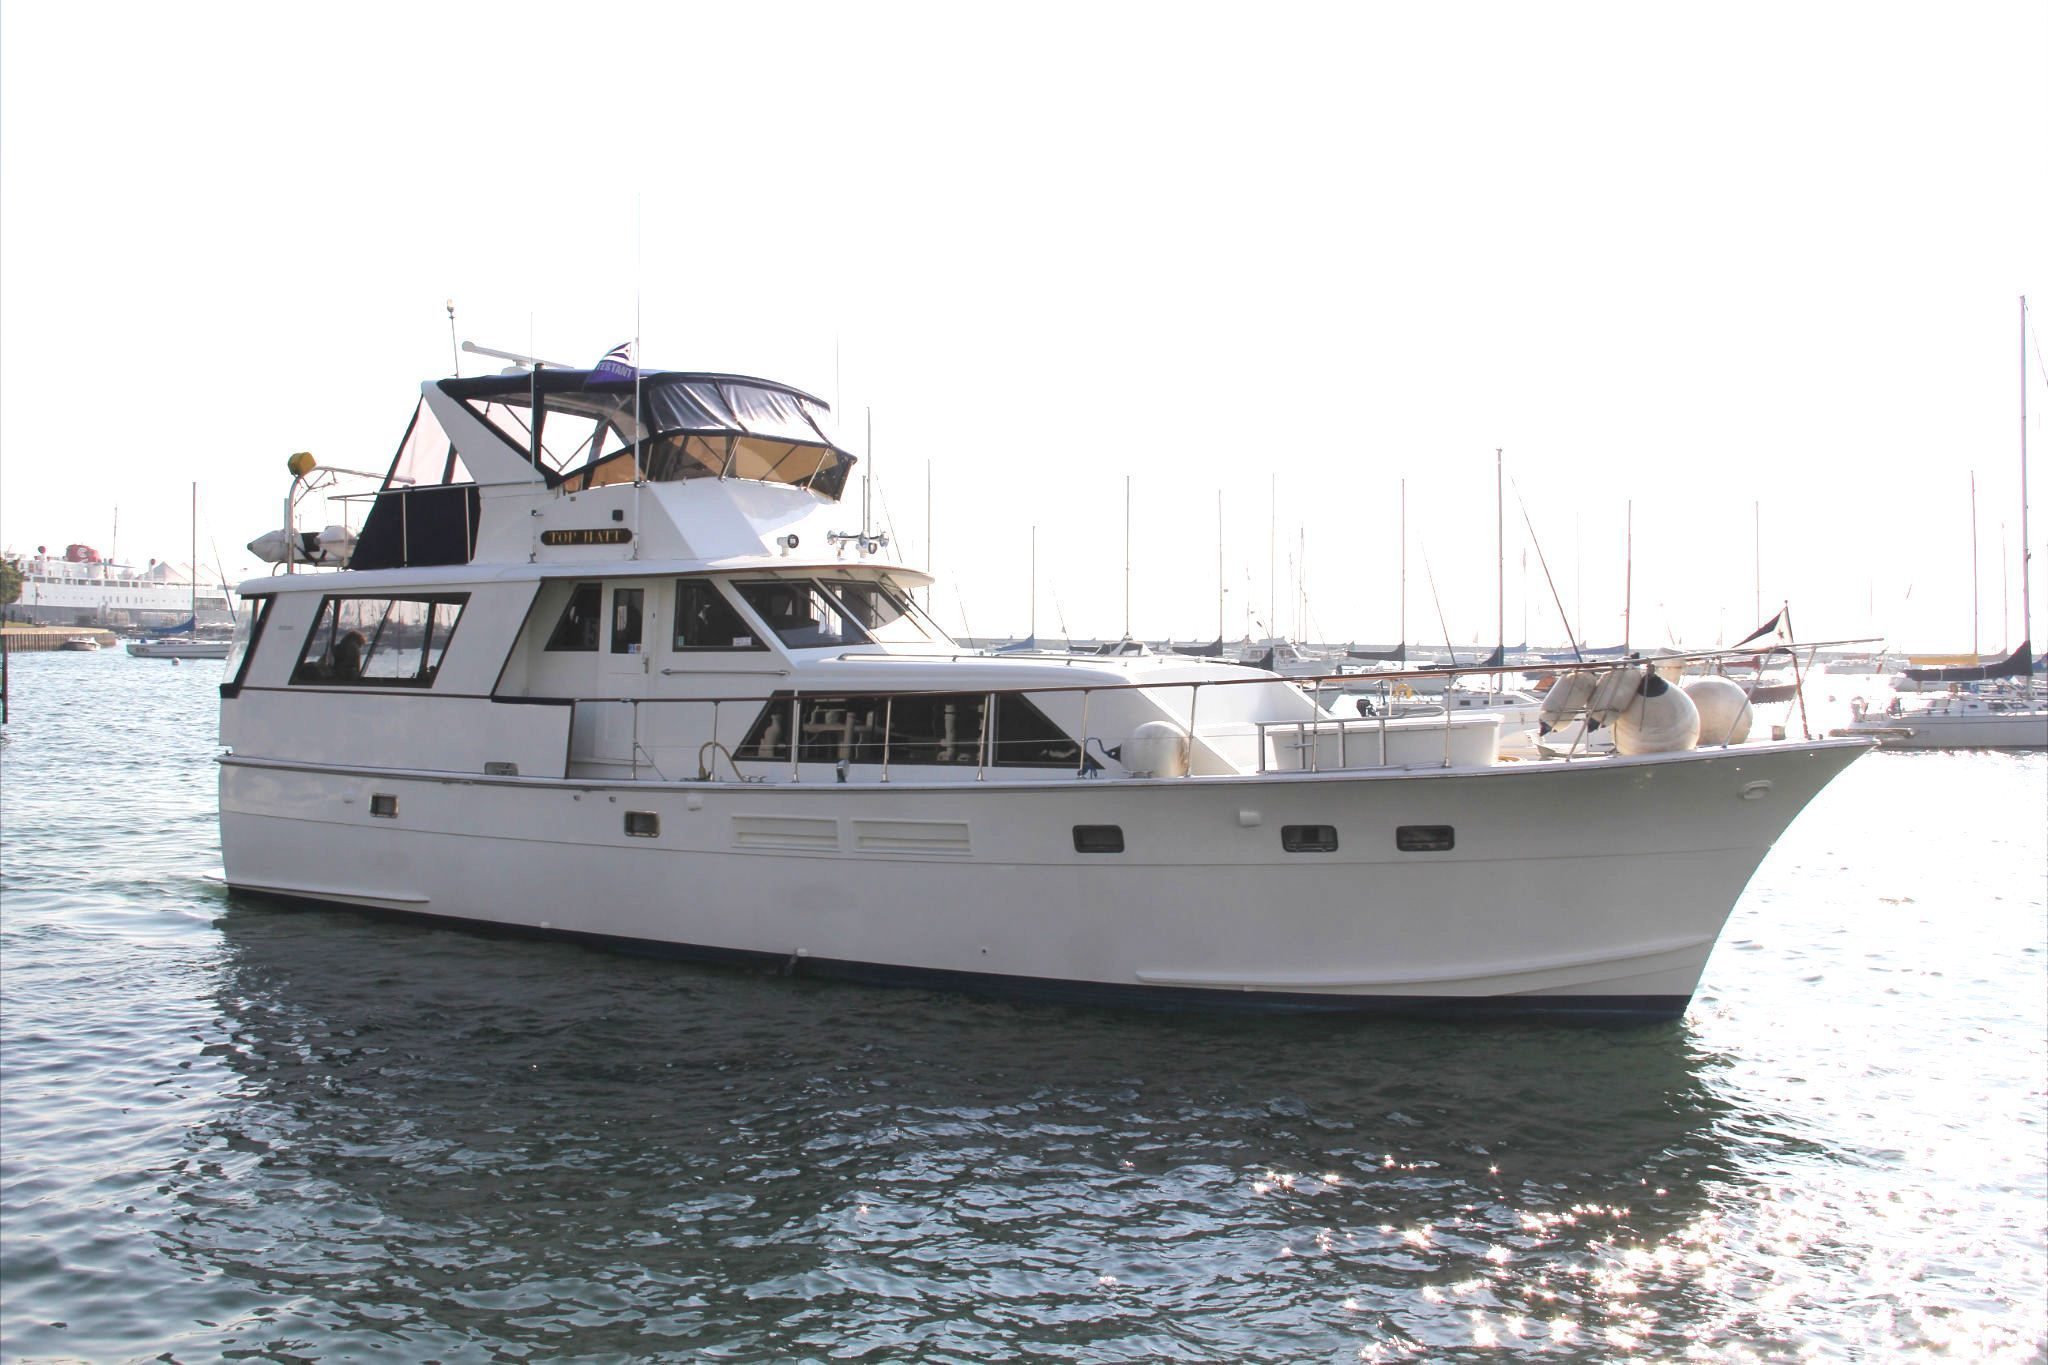 1971 Hatteras 58 Tri Cabin Power Boat For Sale - www